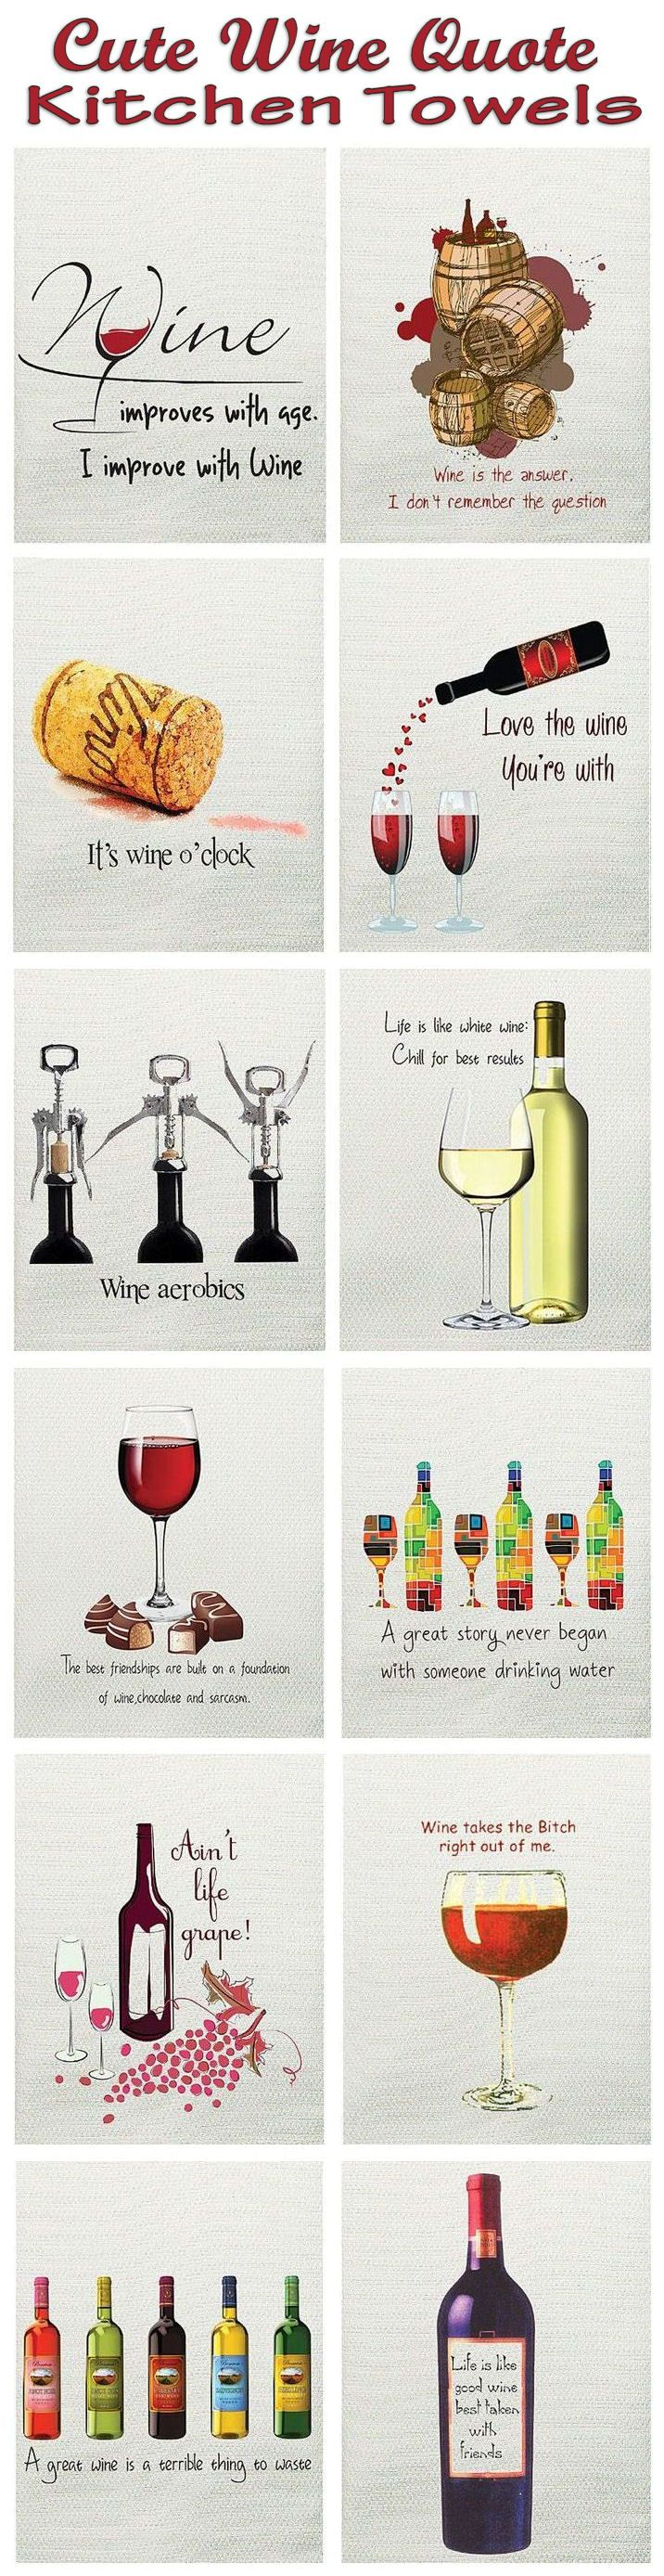 26 best wine quotes images on Pinterest | Blame quotes, Wine quotes ...